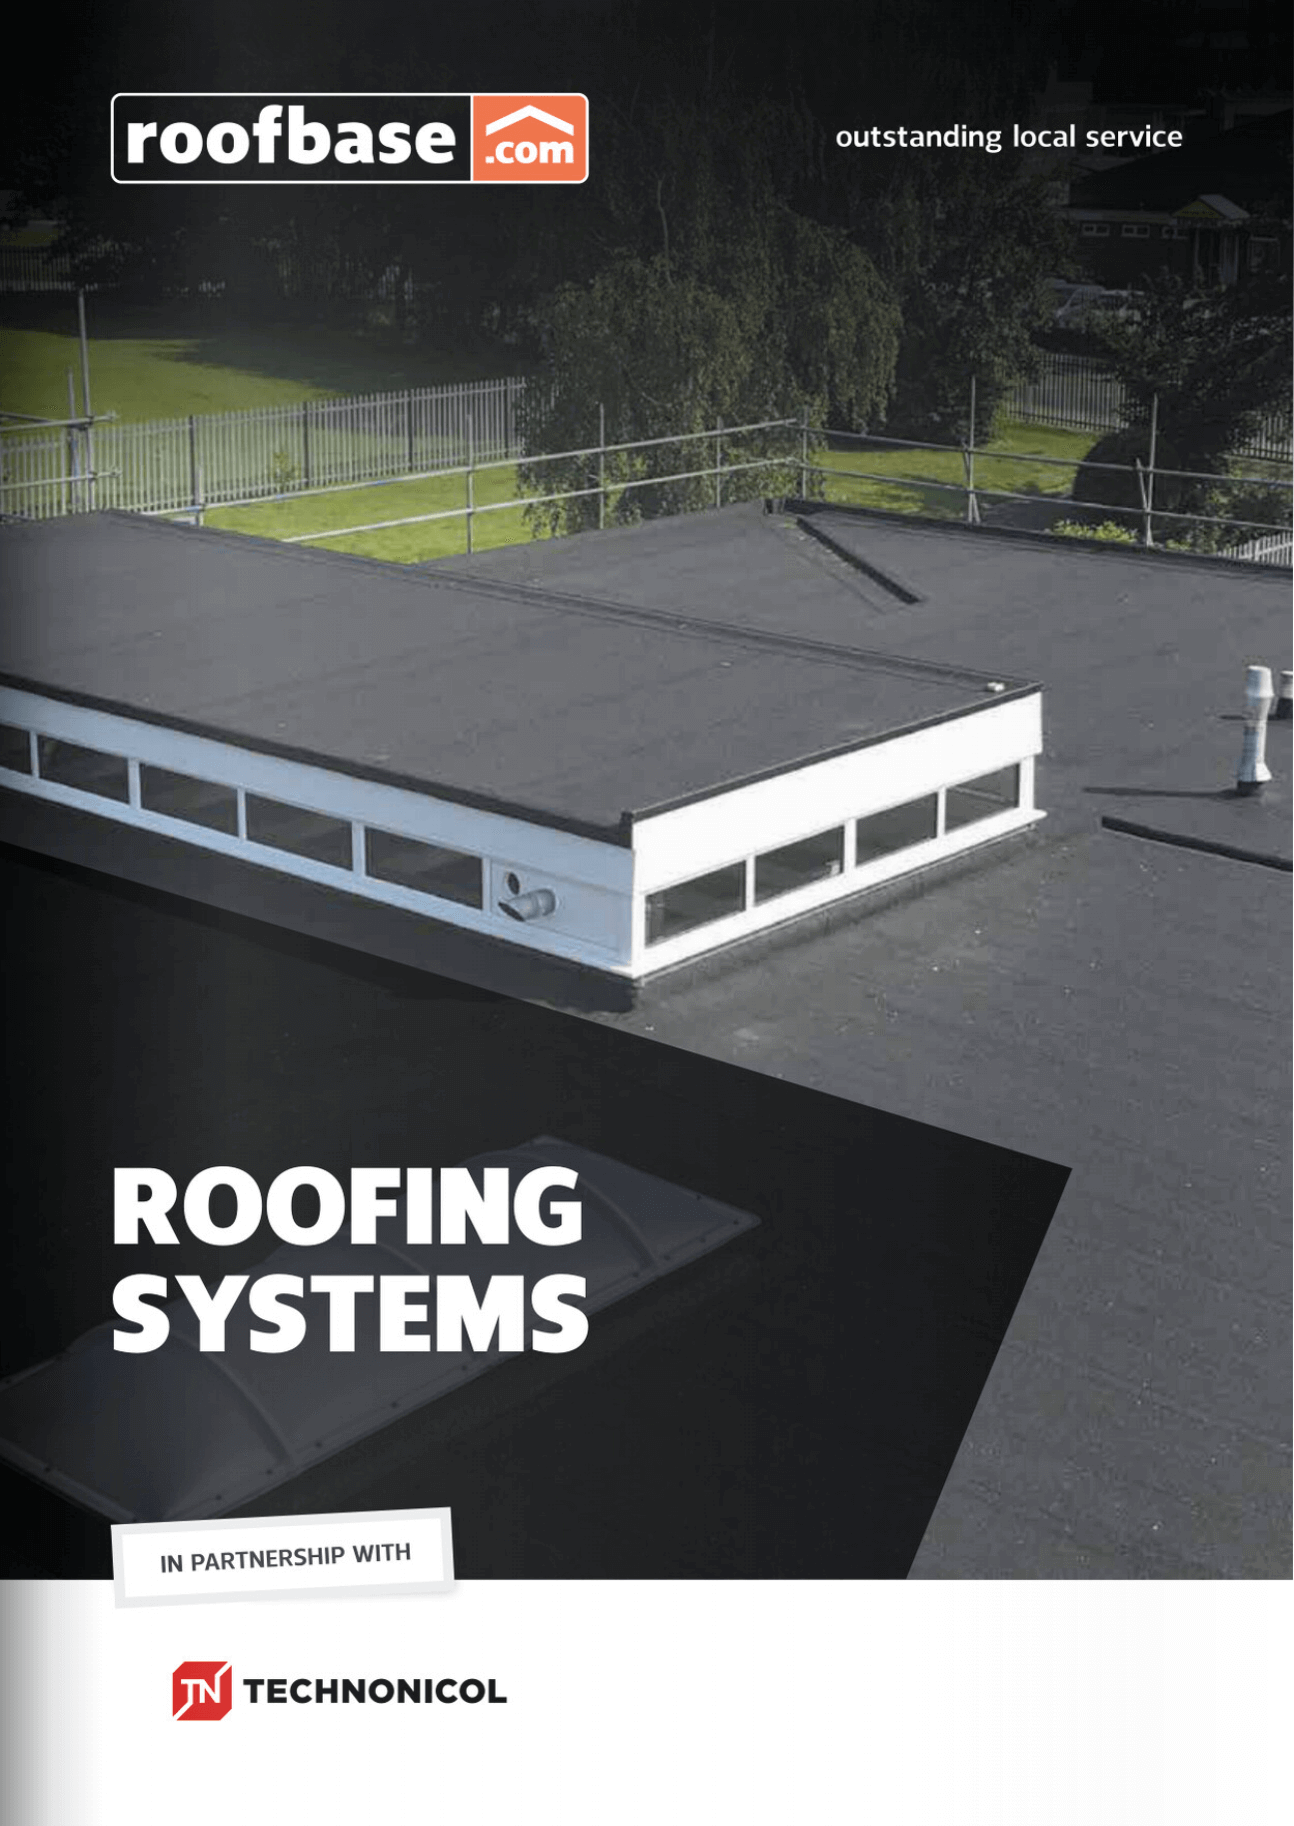 https://roofbase.com/wp-content/uploads/2020/07/RB-Technonicol-1.png